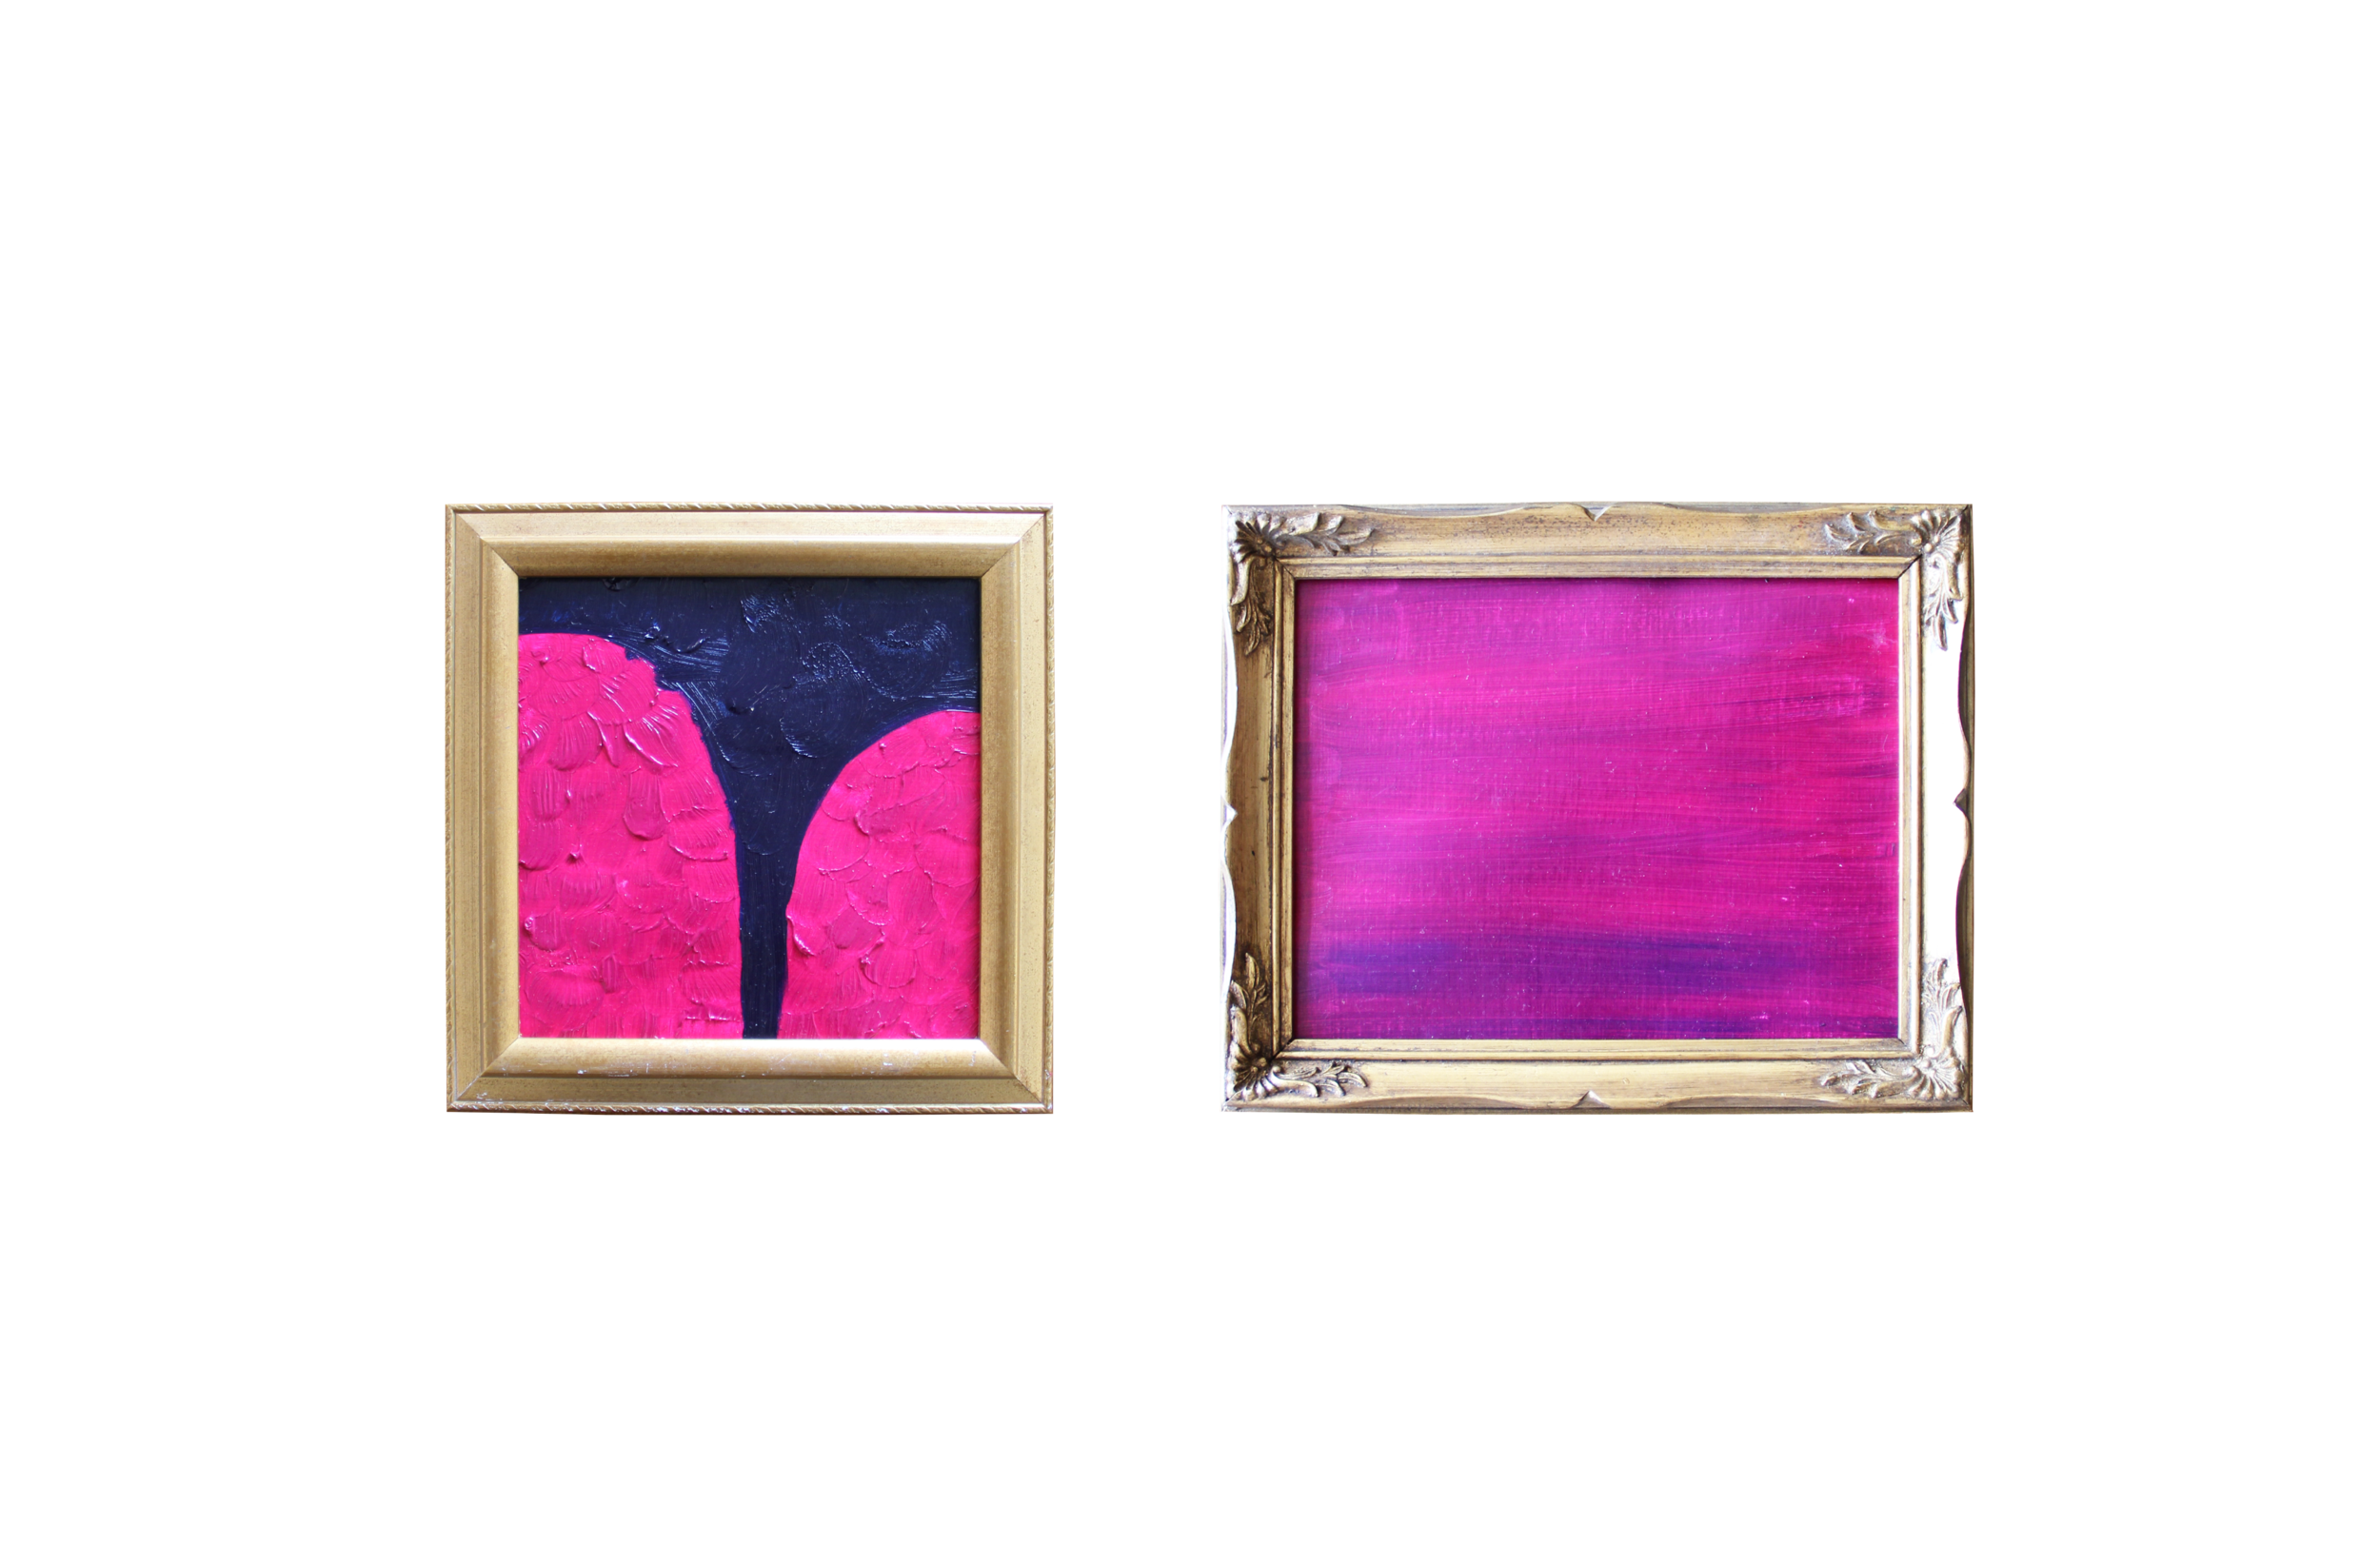 ARTWORKS CREATED BY YOURS TRULY, AND MOUNTED IN SECOND HAND FRAMES.